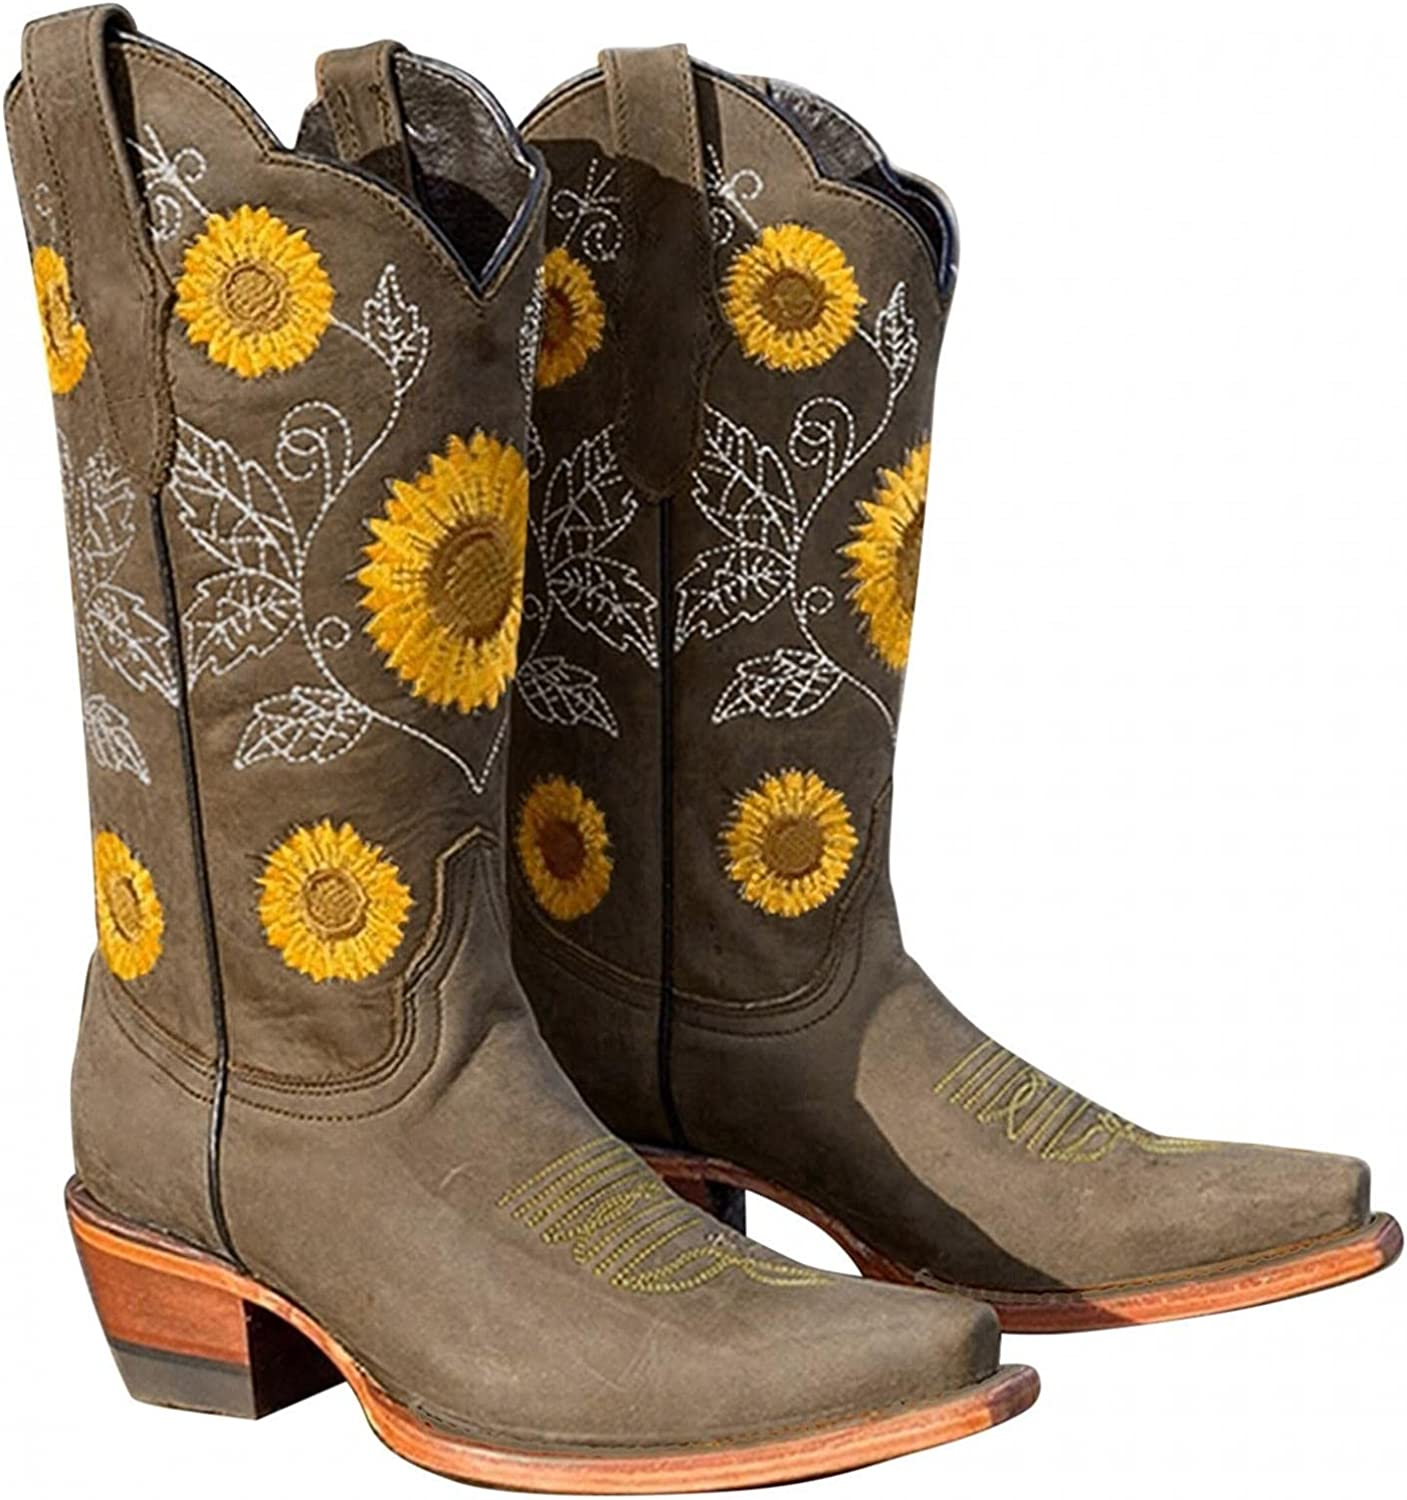 Gibobby Cowboy Boots for Women,Women Western Sunflower Embroidery Mid Calf Boots Low Heel Round Toe Slip On Cowgirl Boot